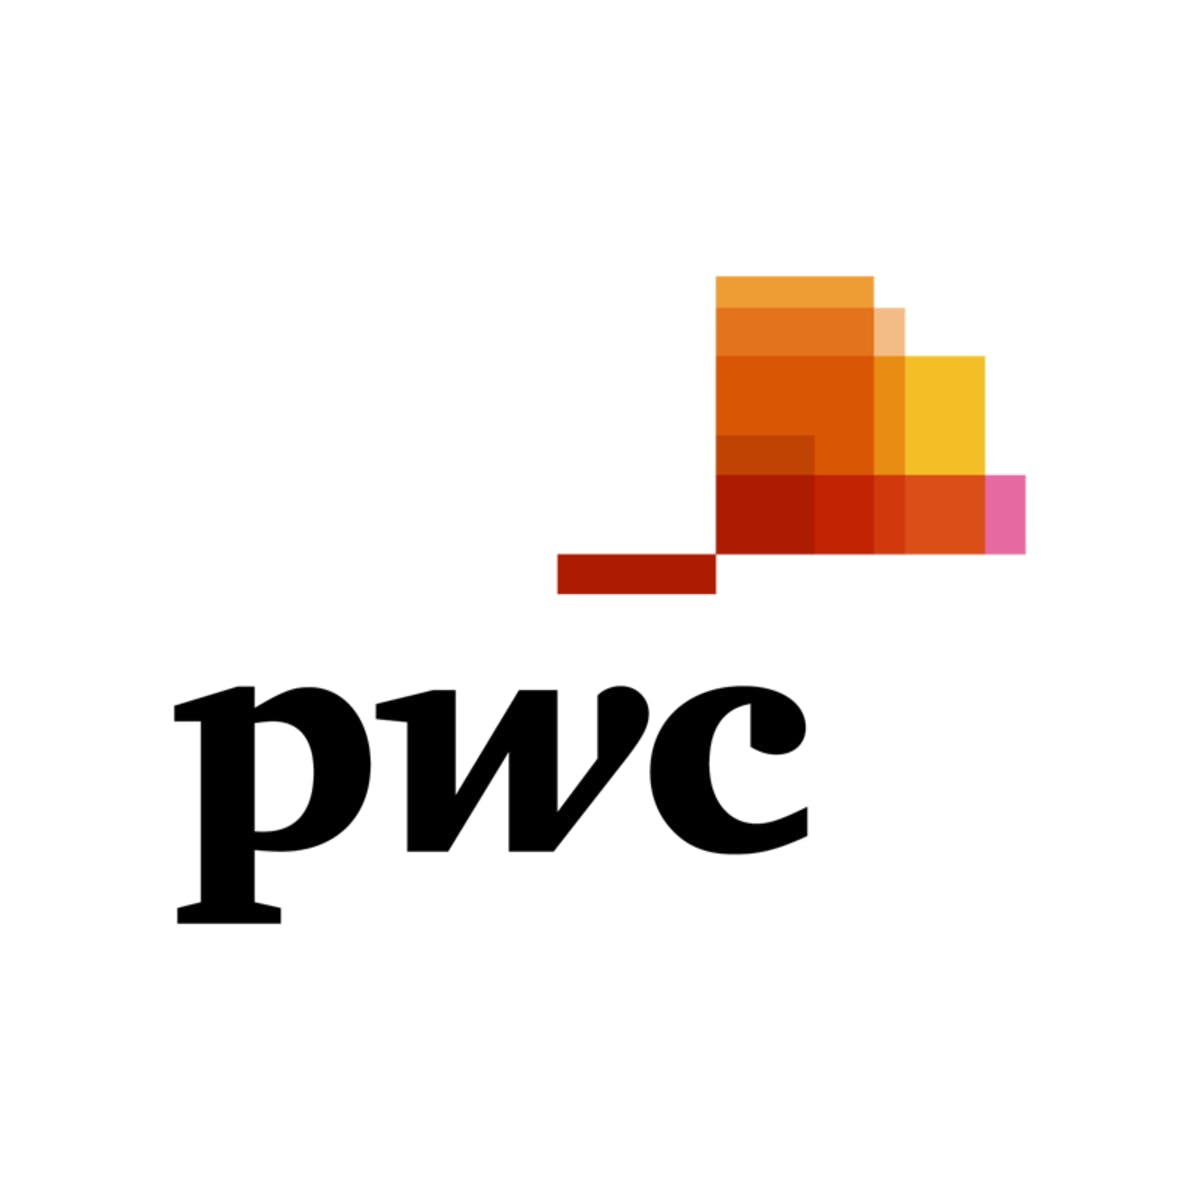 Data Analysis and Presentation Skills: the PwC Approach Final Project